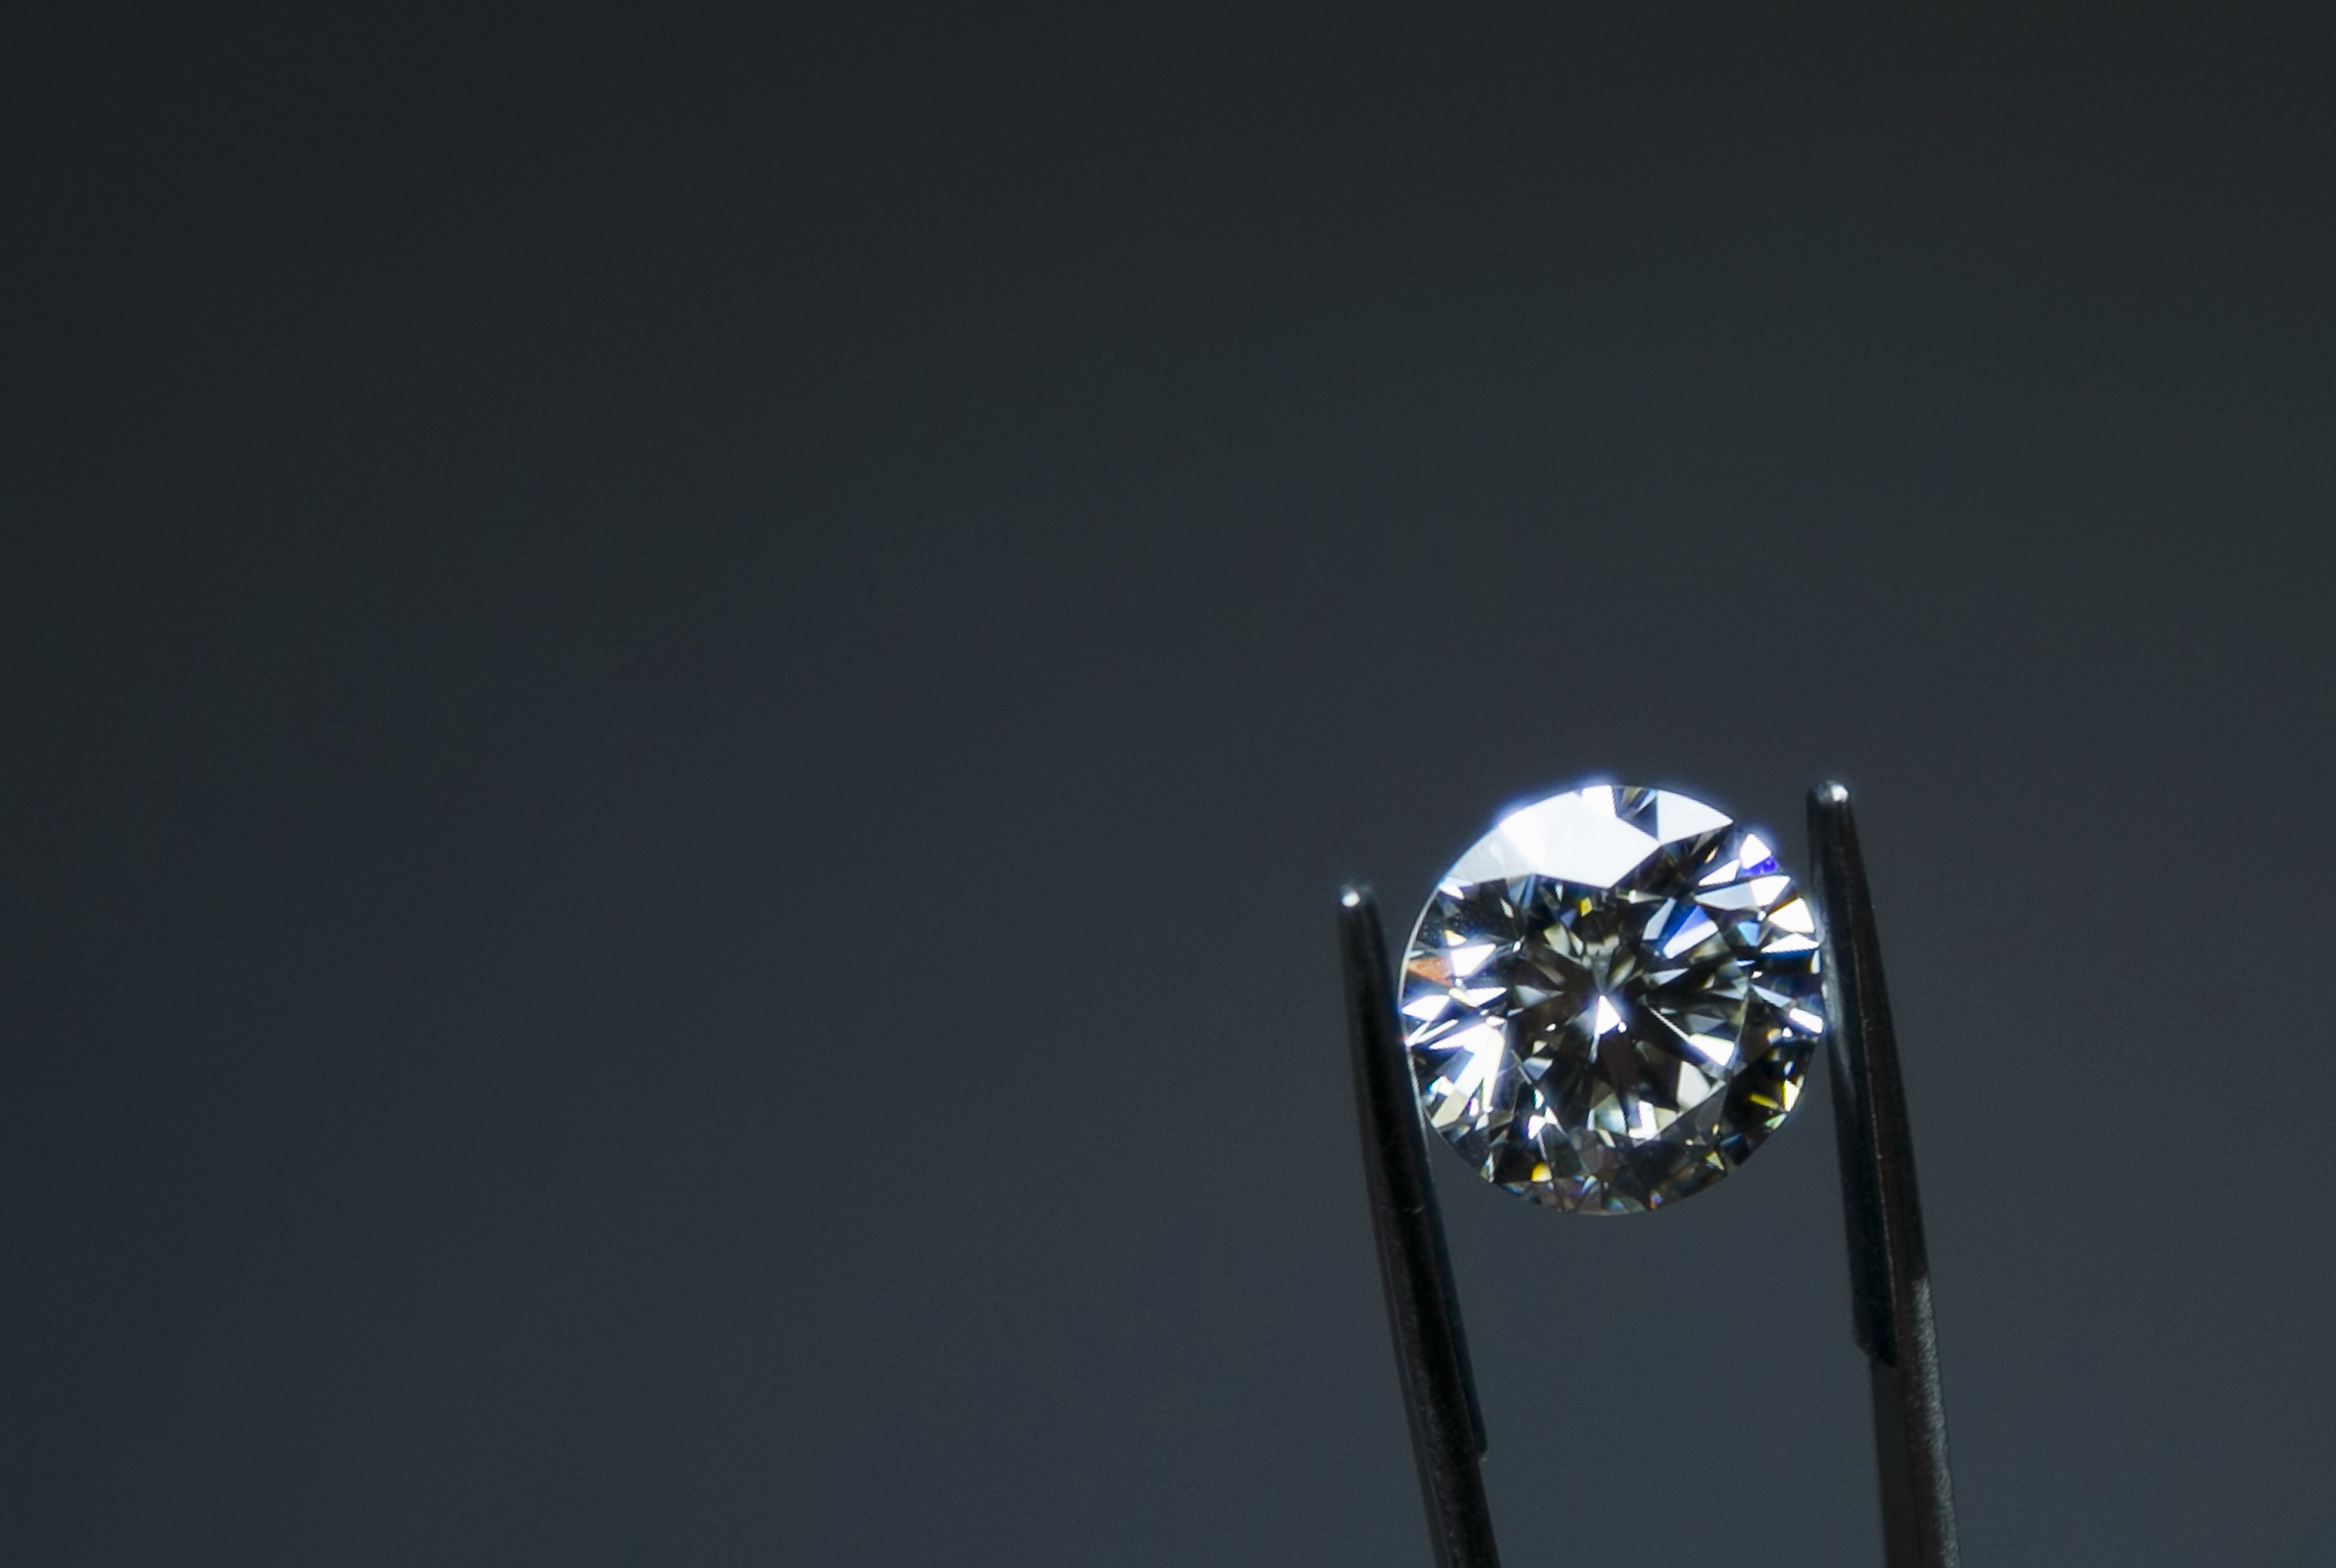 A diamond is displayed at the certification level at the HRD Antwerp Institute of Gemmology at the Antwerp World Diamond Centre